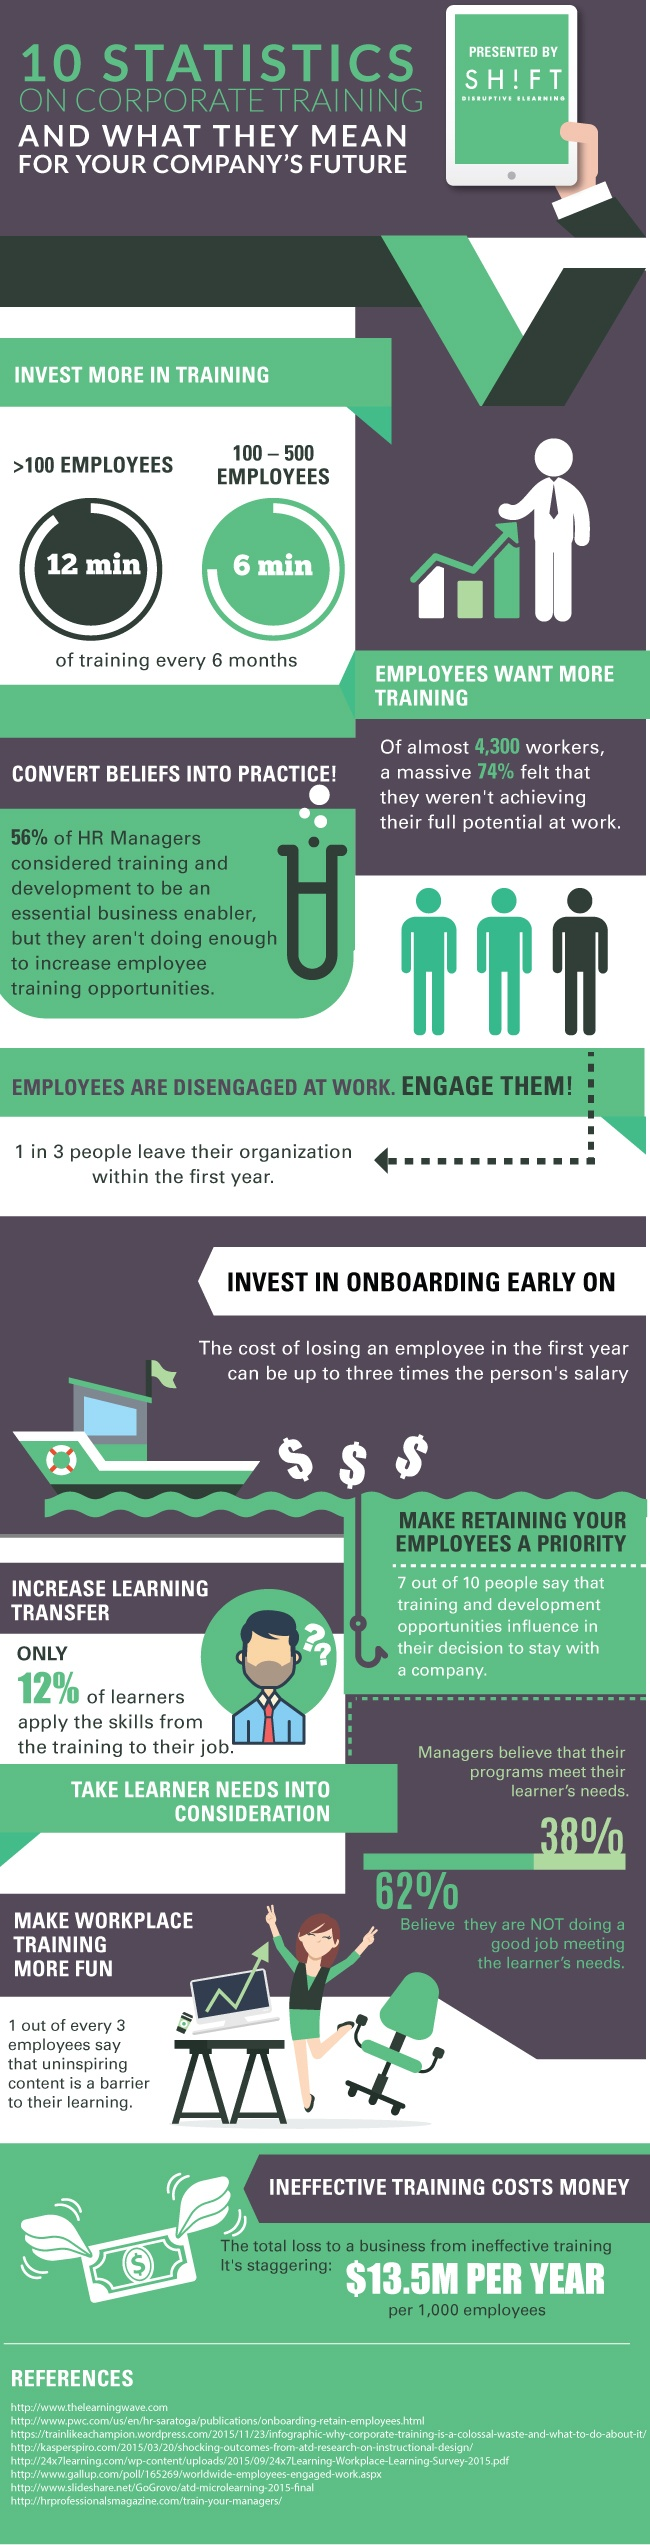 10 Statistics on Corporate Training and What They Mean for Your Company's Future | Source: SHIFTelearning